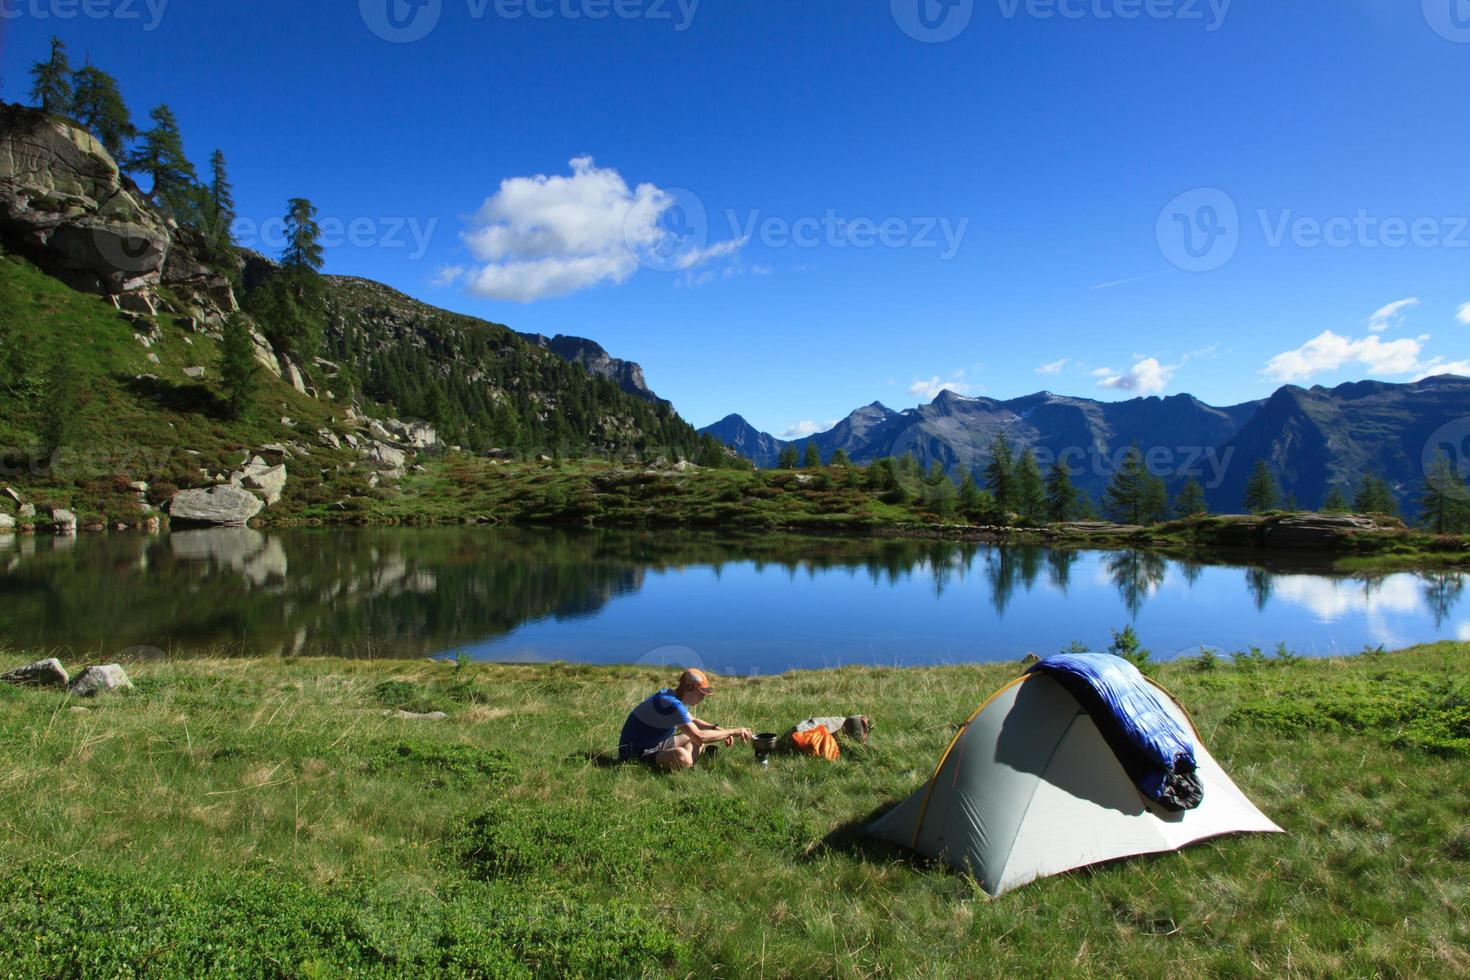 Camping in the mountains photo